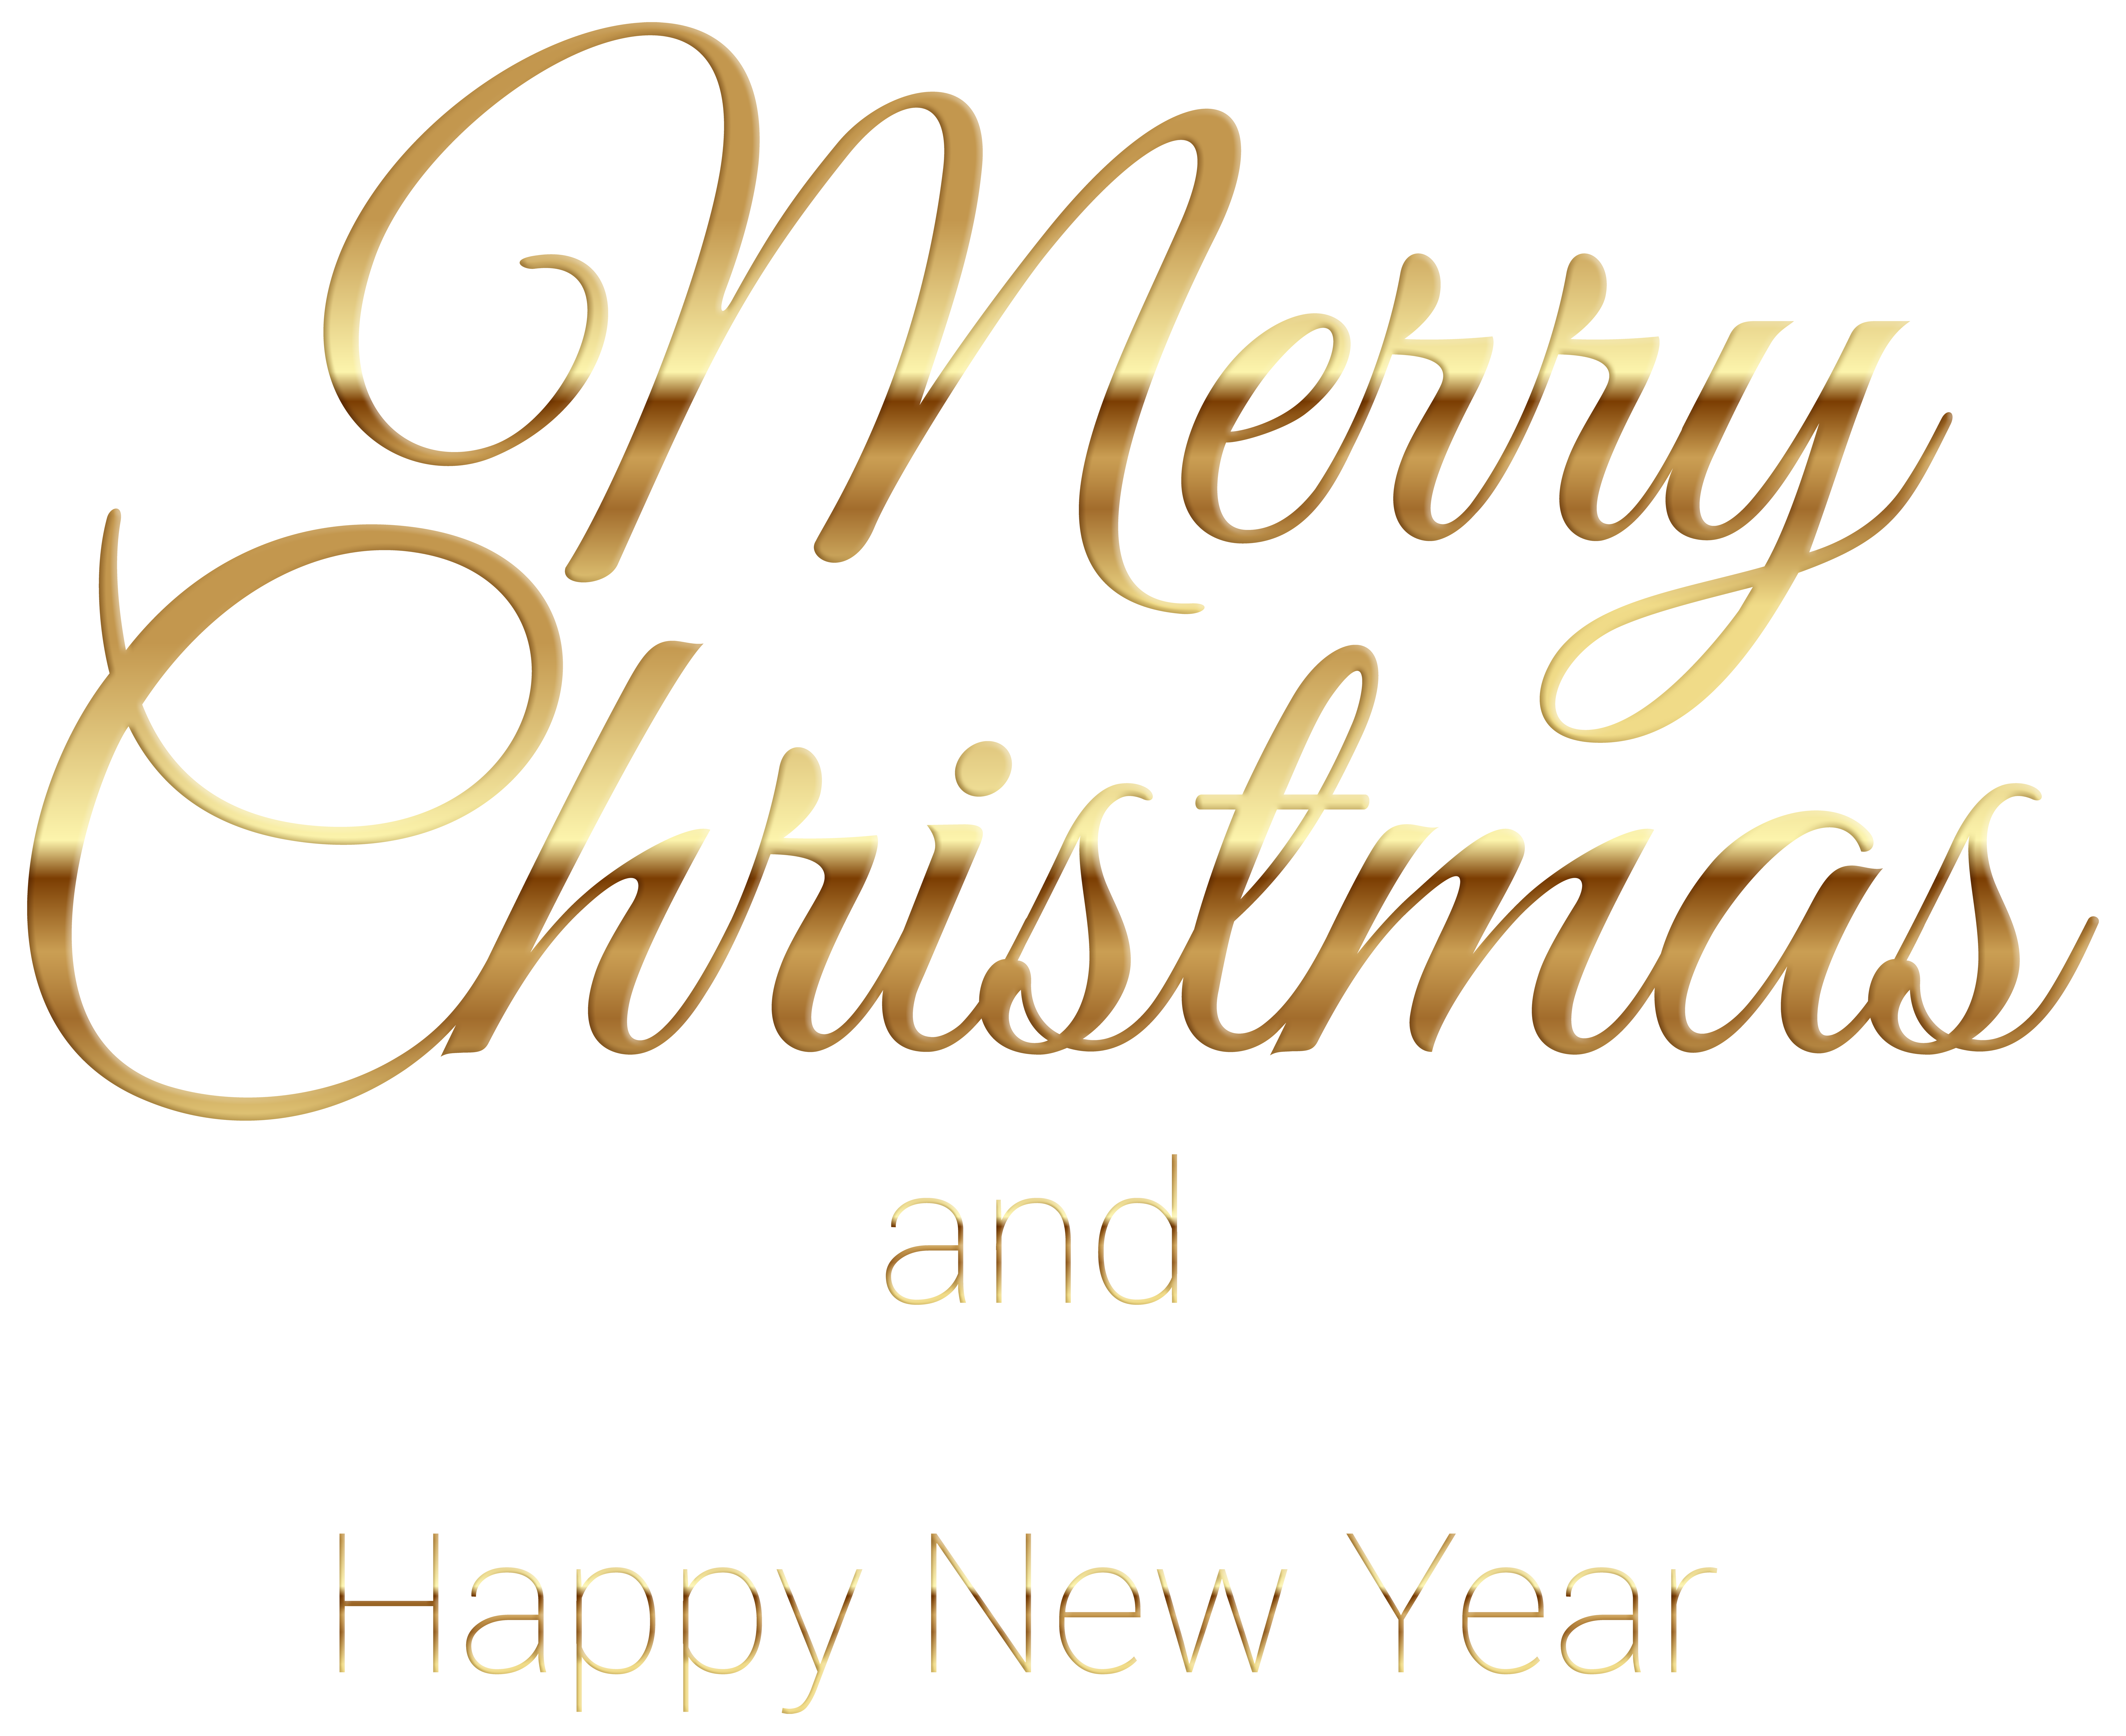 Merry Christmas Images Png.Merry Christmas Gold Transparent Png Clipart Free Download